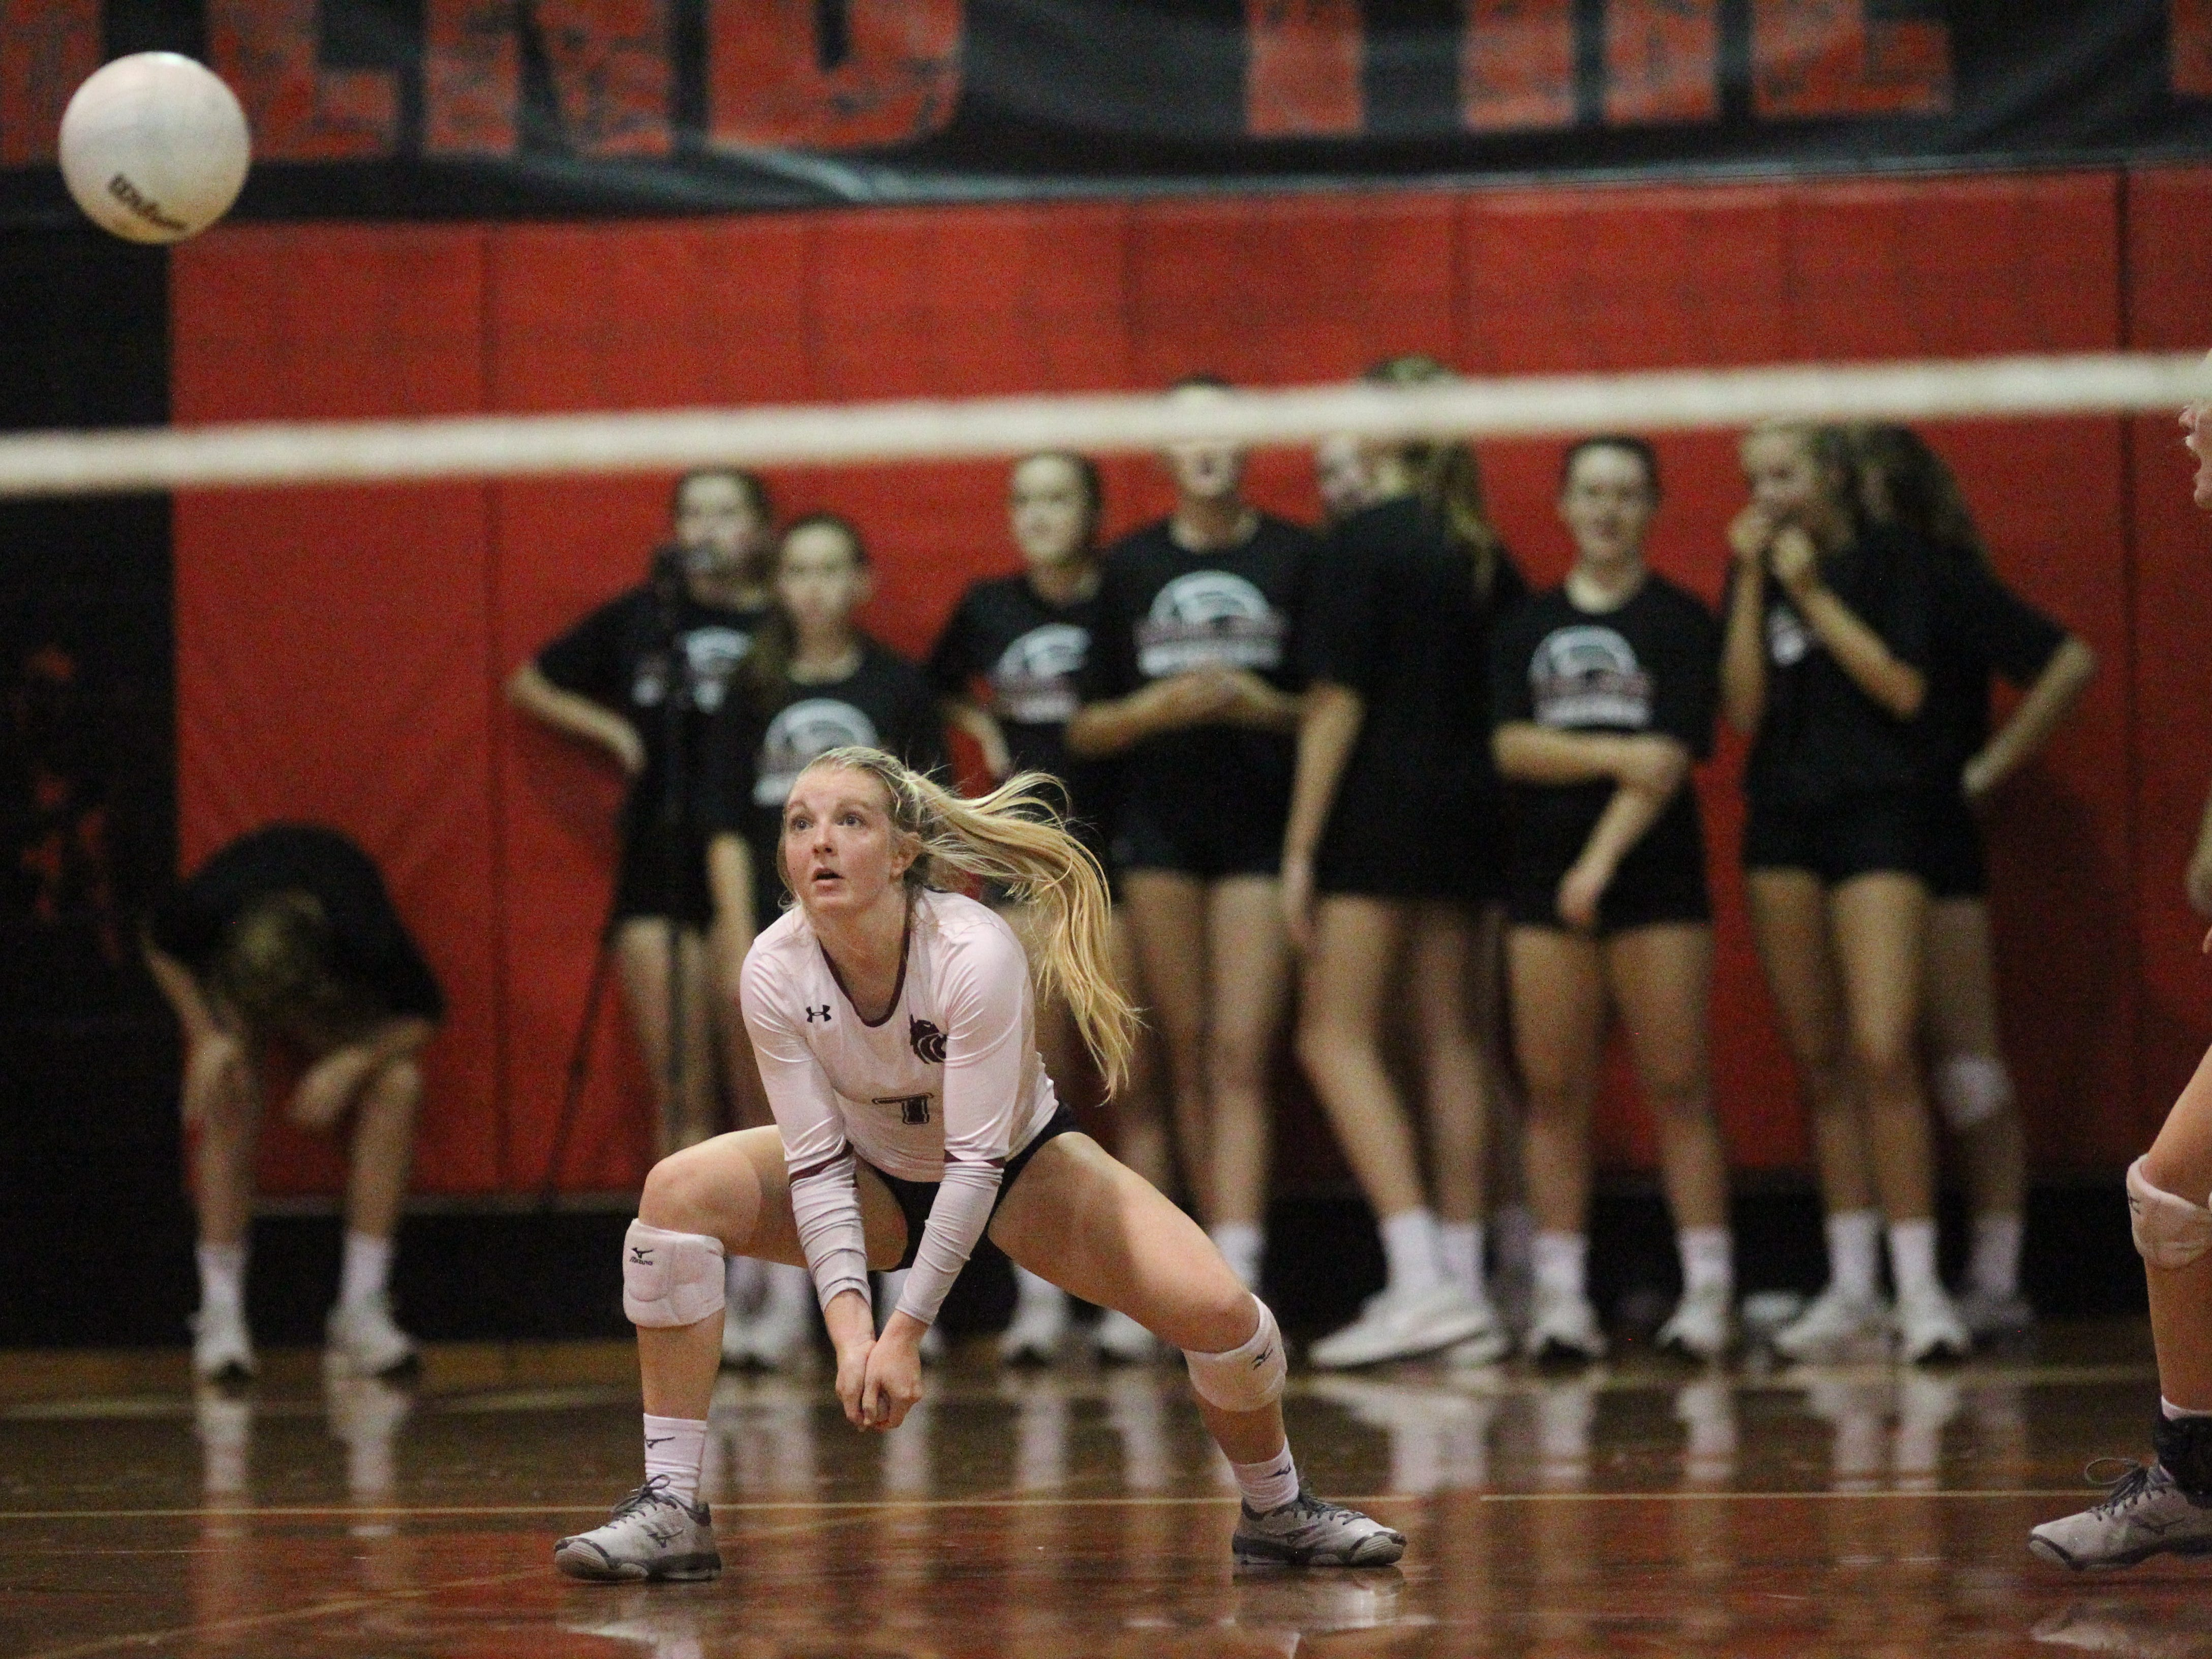 Chiles' Kiaya Clark prepares to receive serve as Leon beat Chiles 3-0 on Thursday night in a District 2-8A volleyball game.